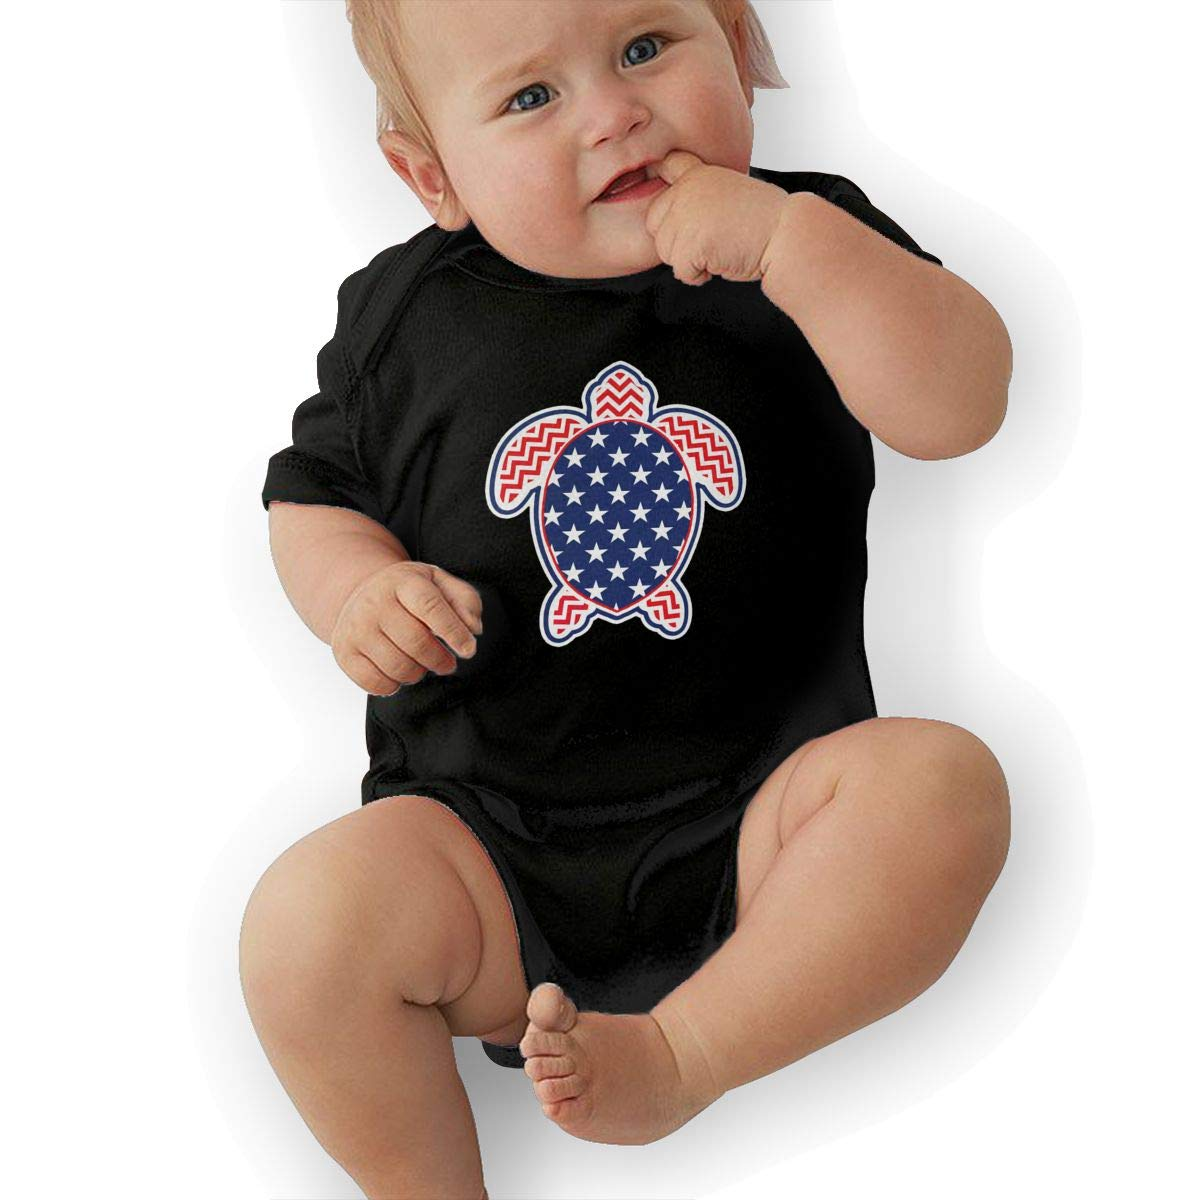 Bodysuits Clothes Onesies Jumpsuits Outfits Black Stars and Strips Sea Turtle Baby Pajamas